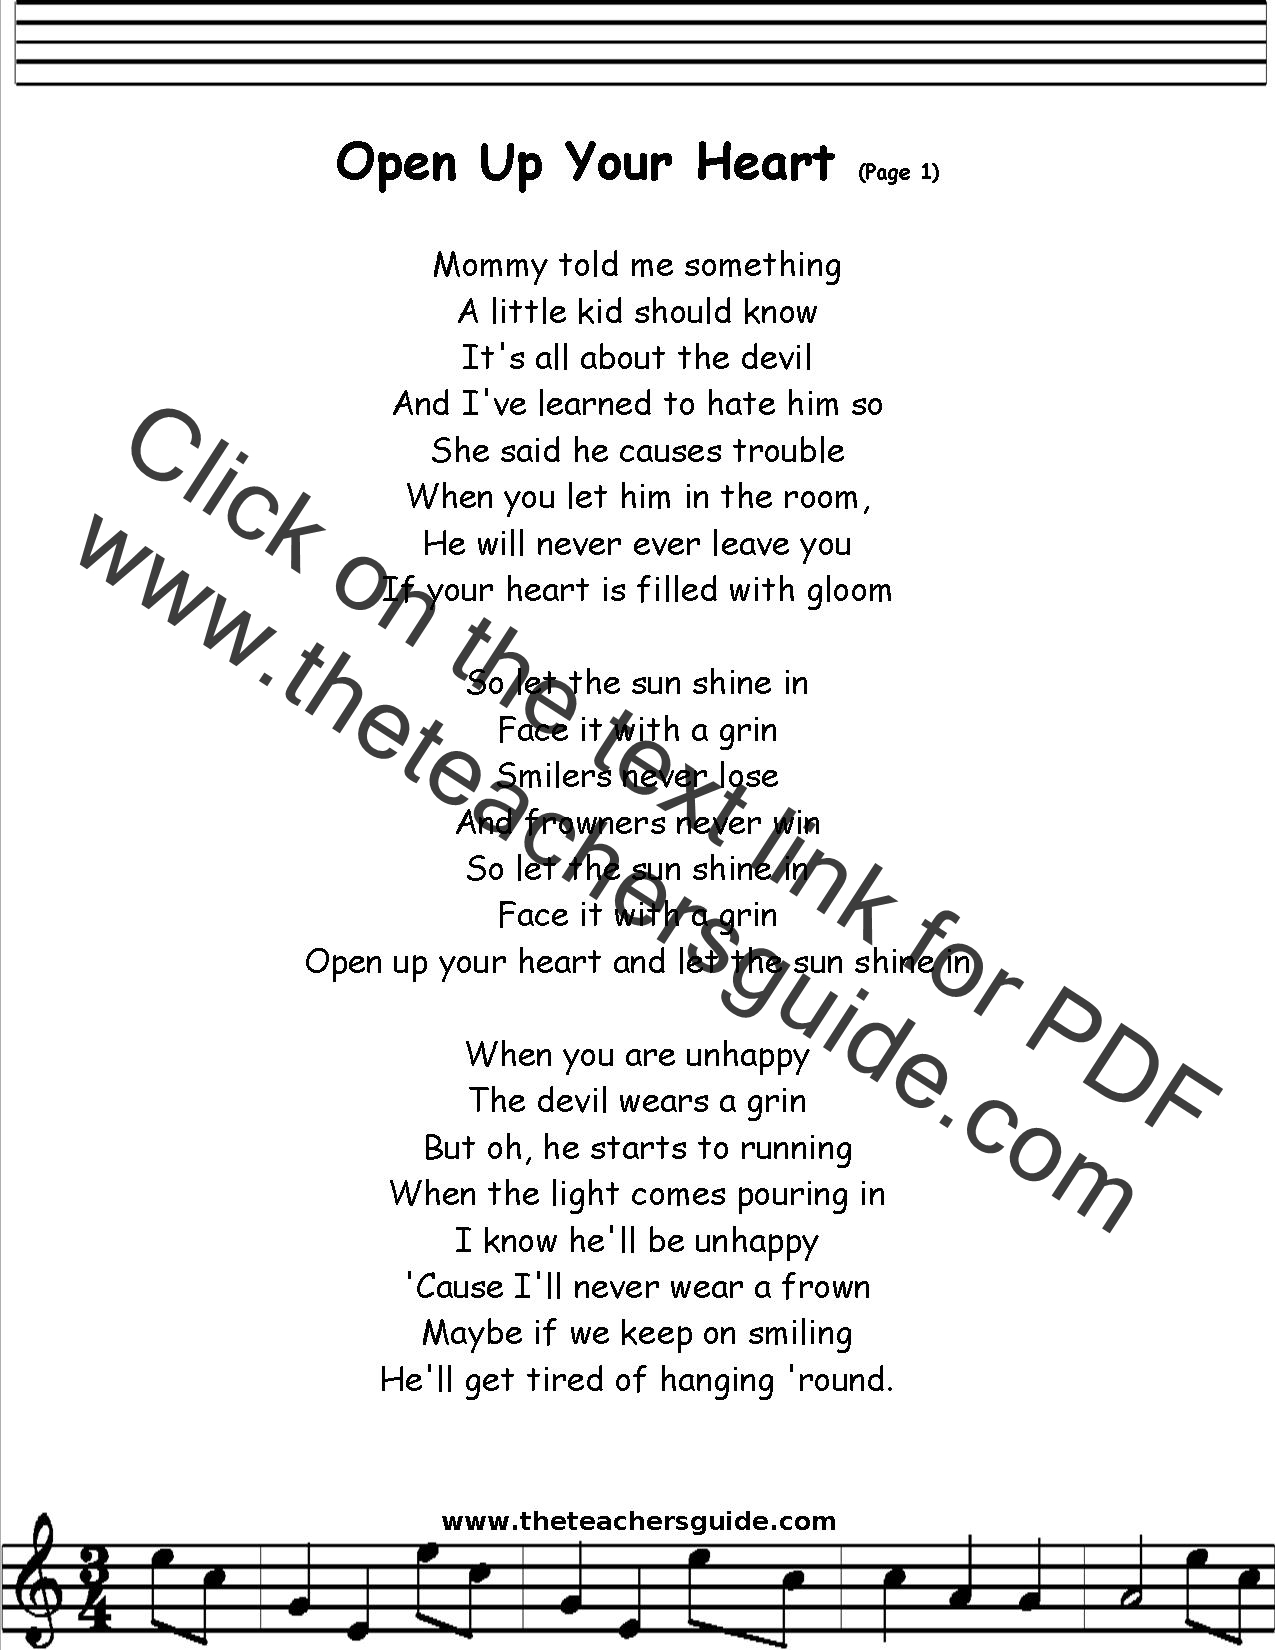 Buck Owens - Open Up Your Heart Lyrics | MetroLyrics